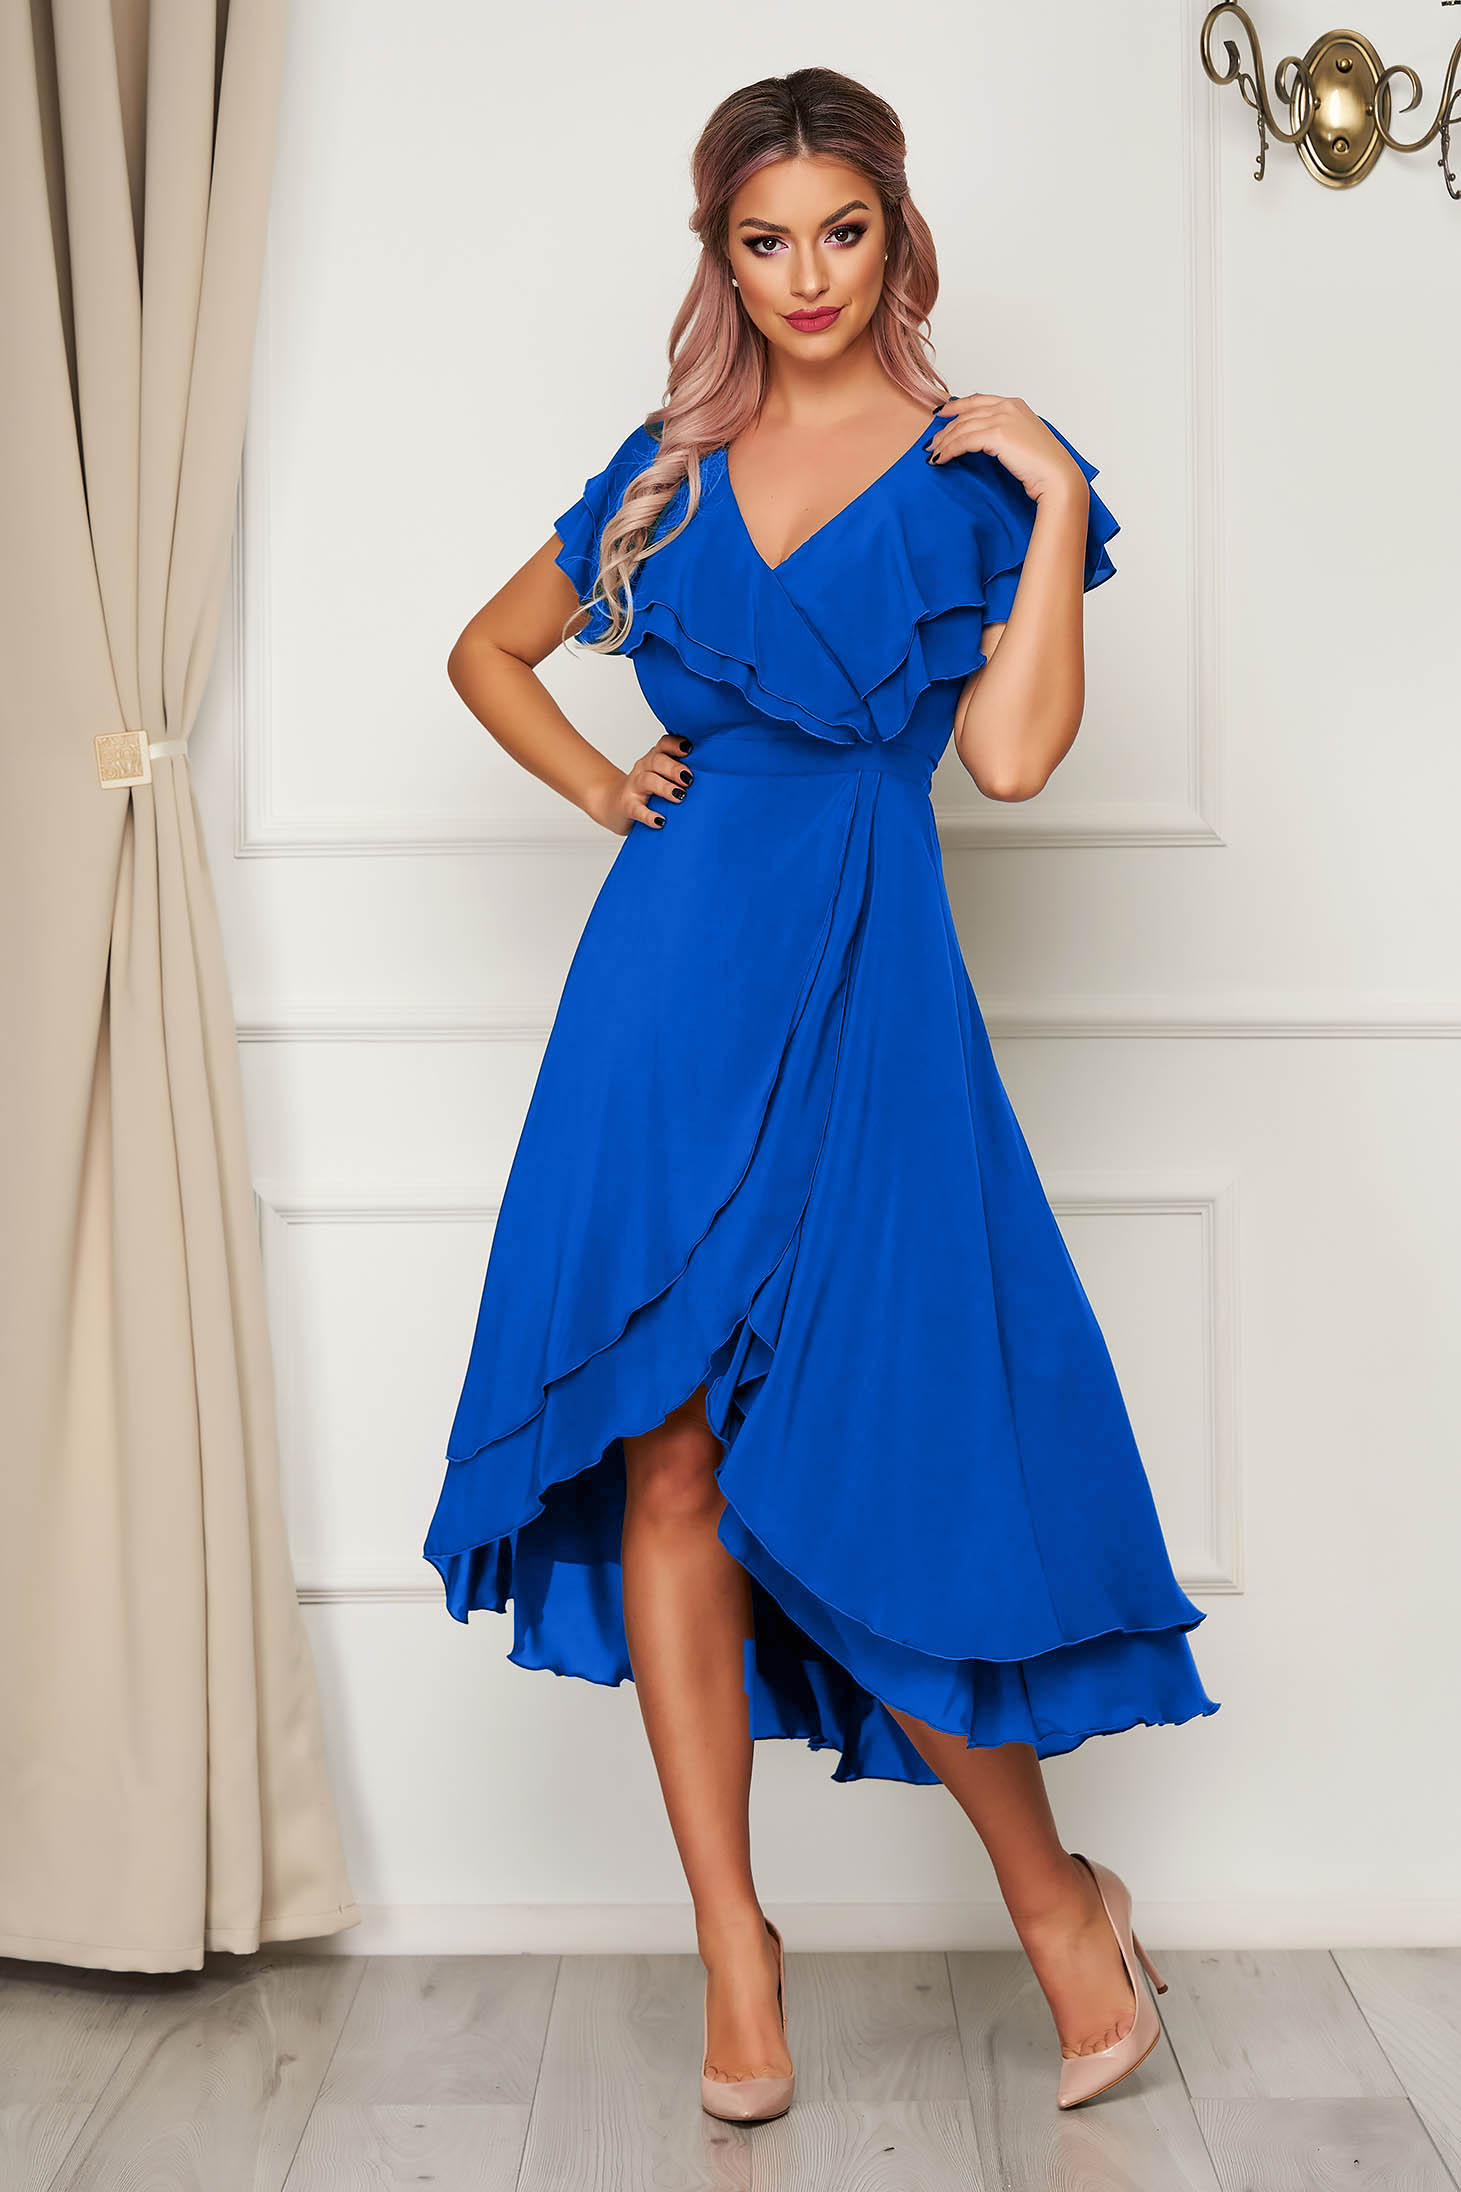 Dress StarShinerS blue occasional from veil fabric with ruffle details asymmetrical cloche